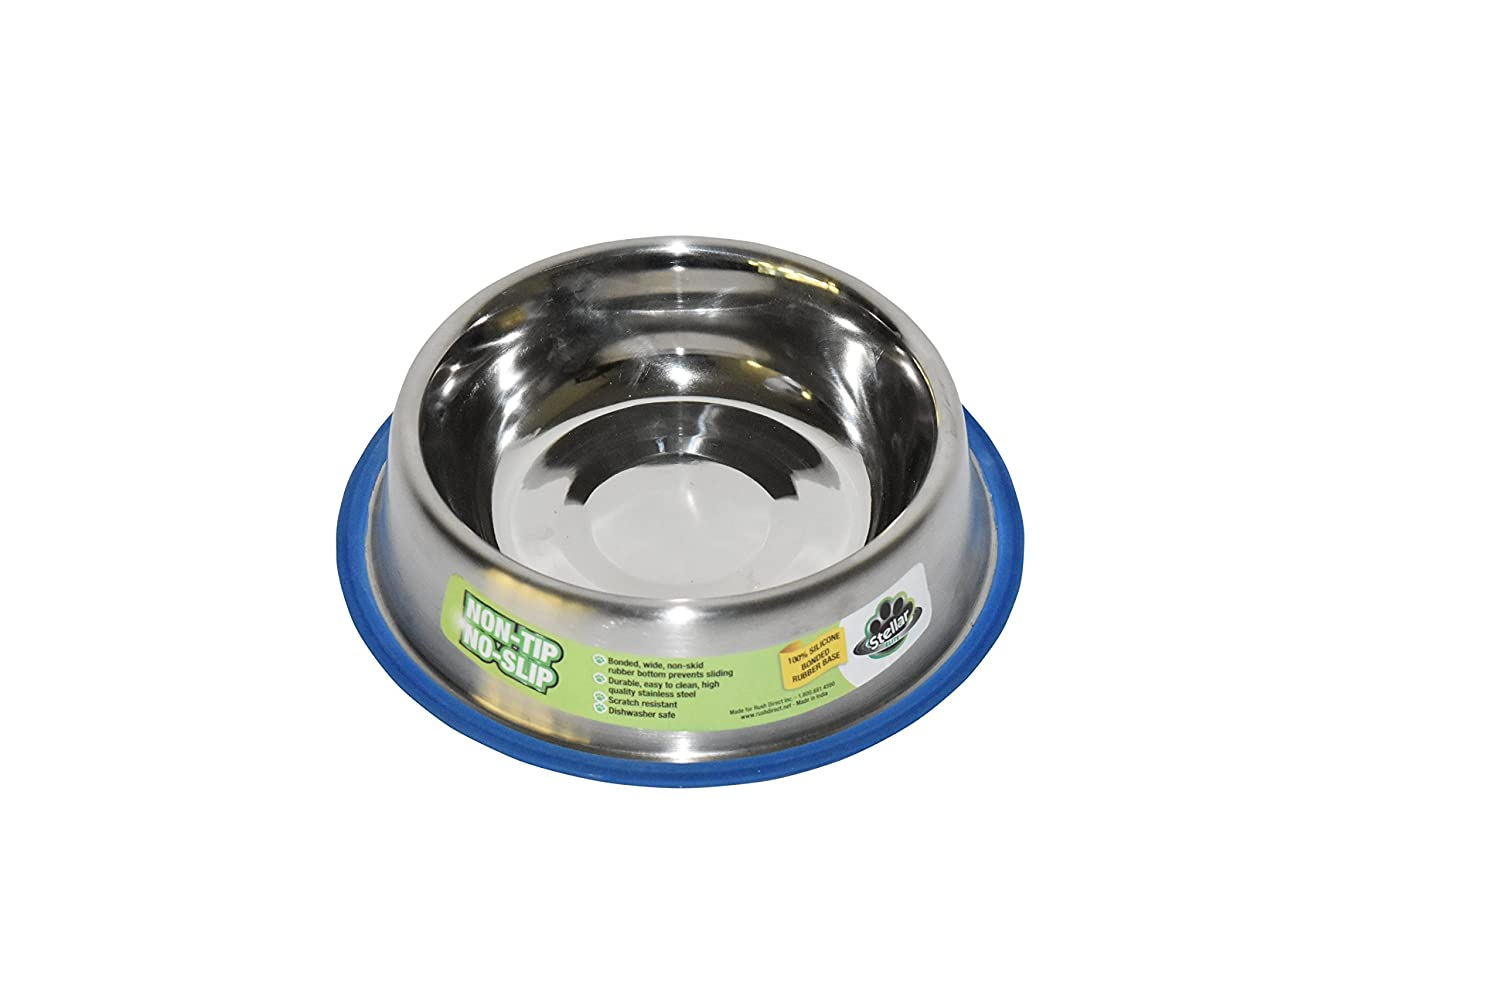 Stellar Bowls Non Tip Anti Skid Dish with 100% Silicon Bonded Rubber Ring, 32 oz